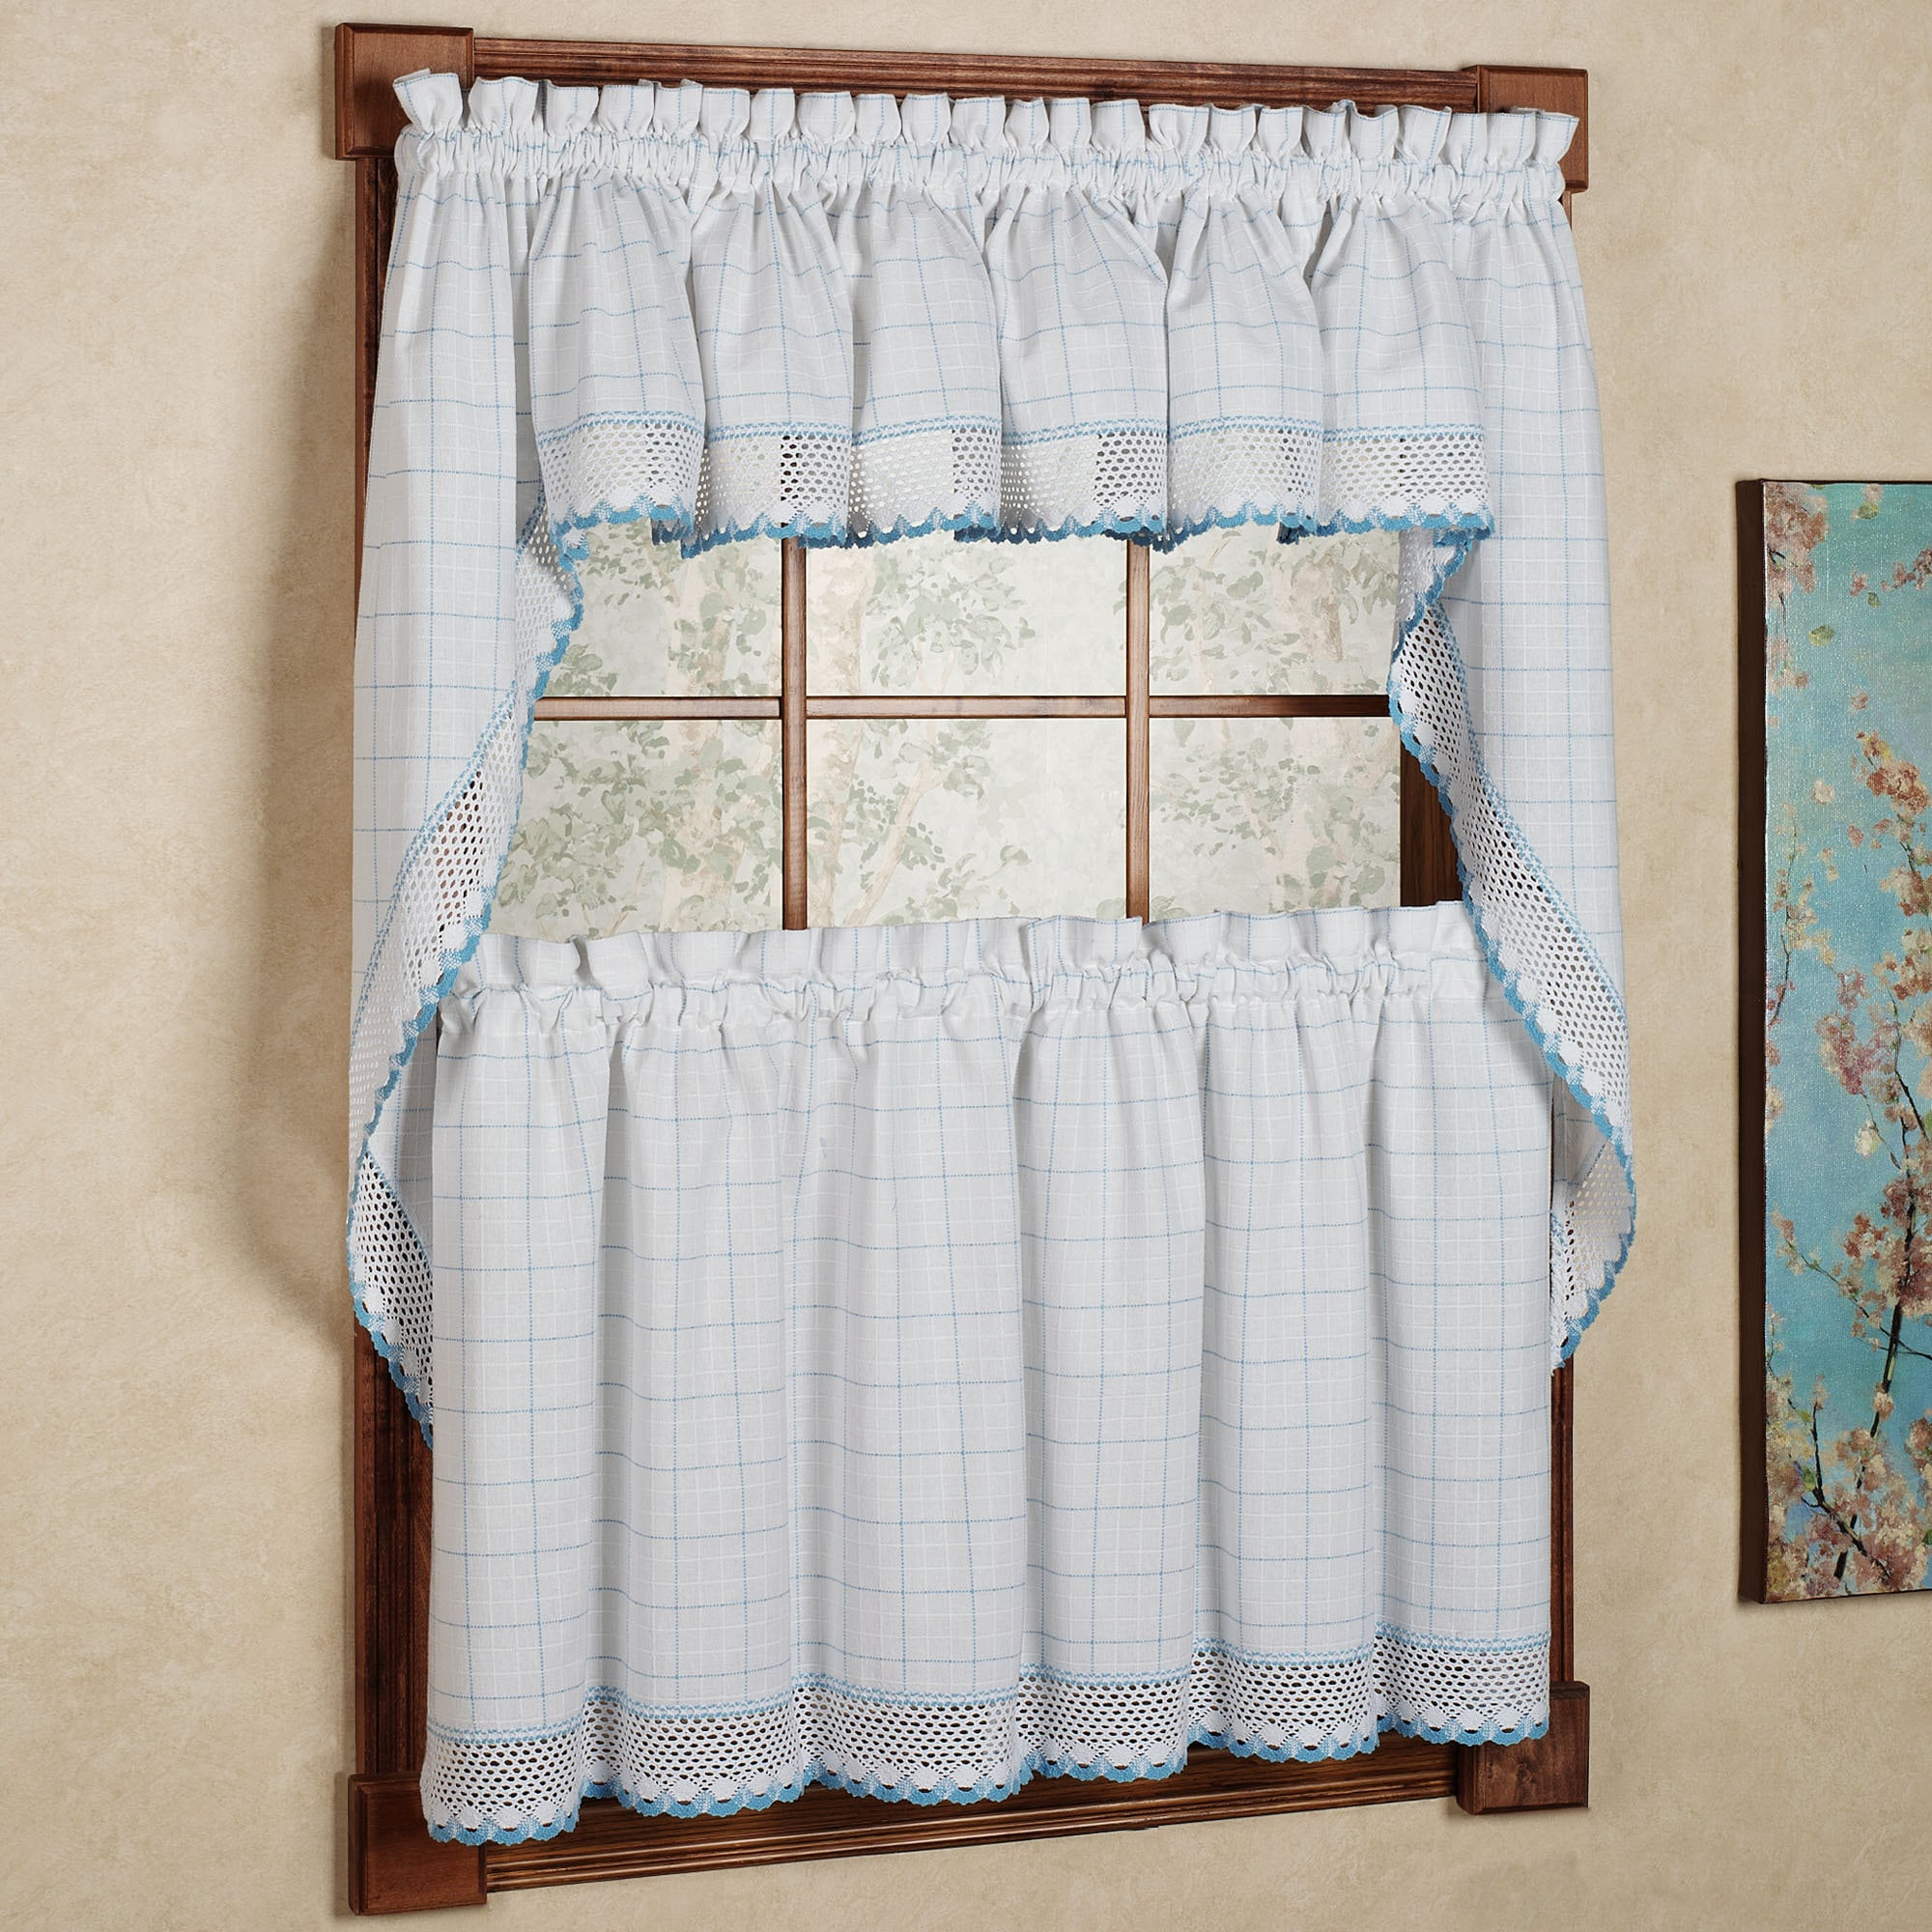 Patterns For Kitchen Curtains And Valances Cotton Classic White Blue Window Pane Pattern And Crotchet Trim Tiers Swags And Valance Options